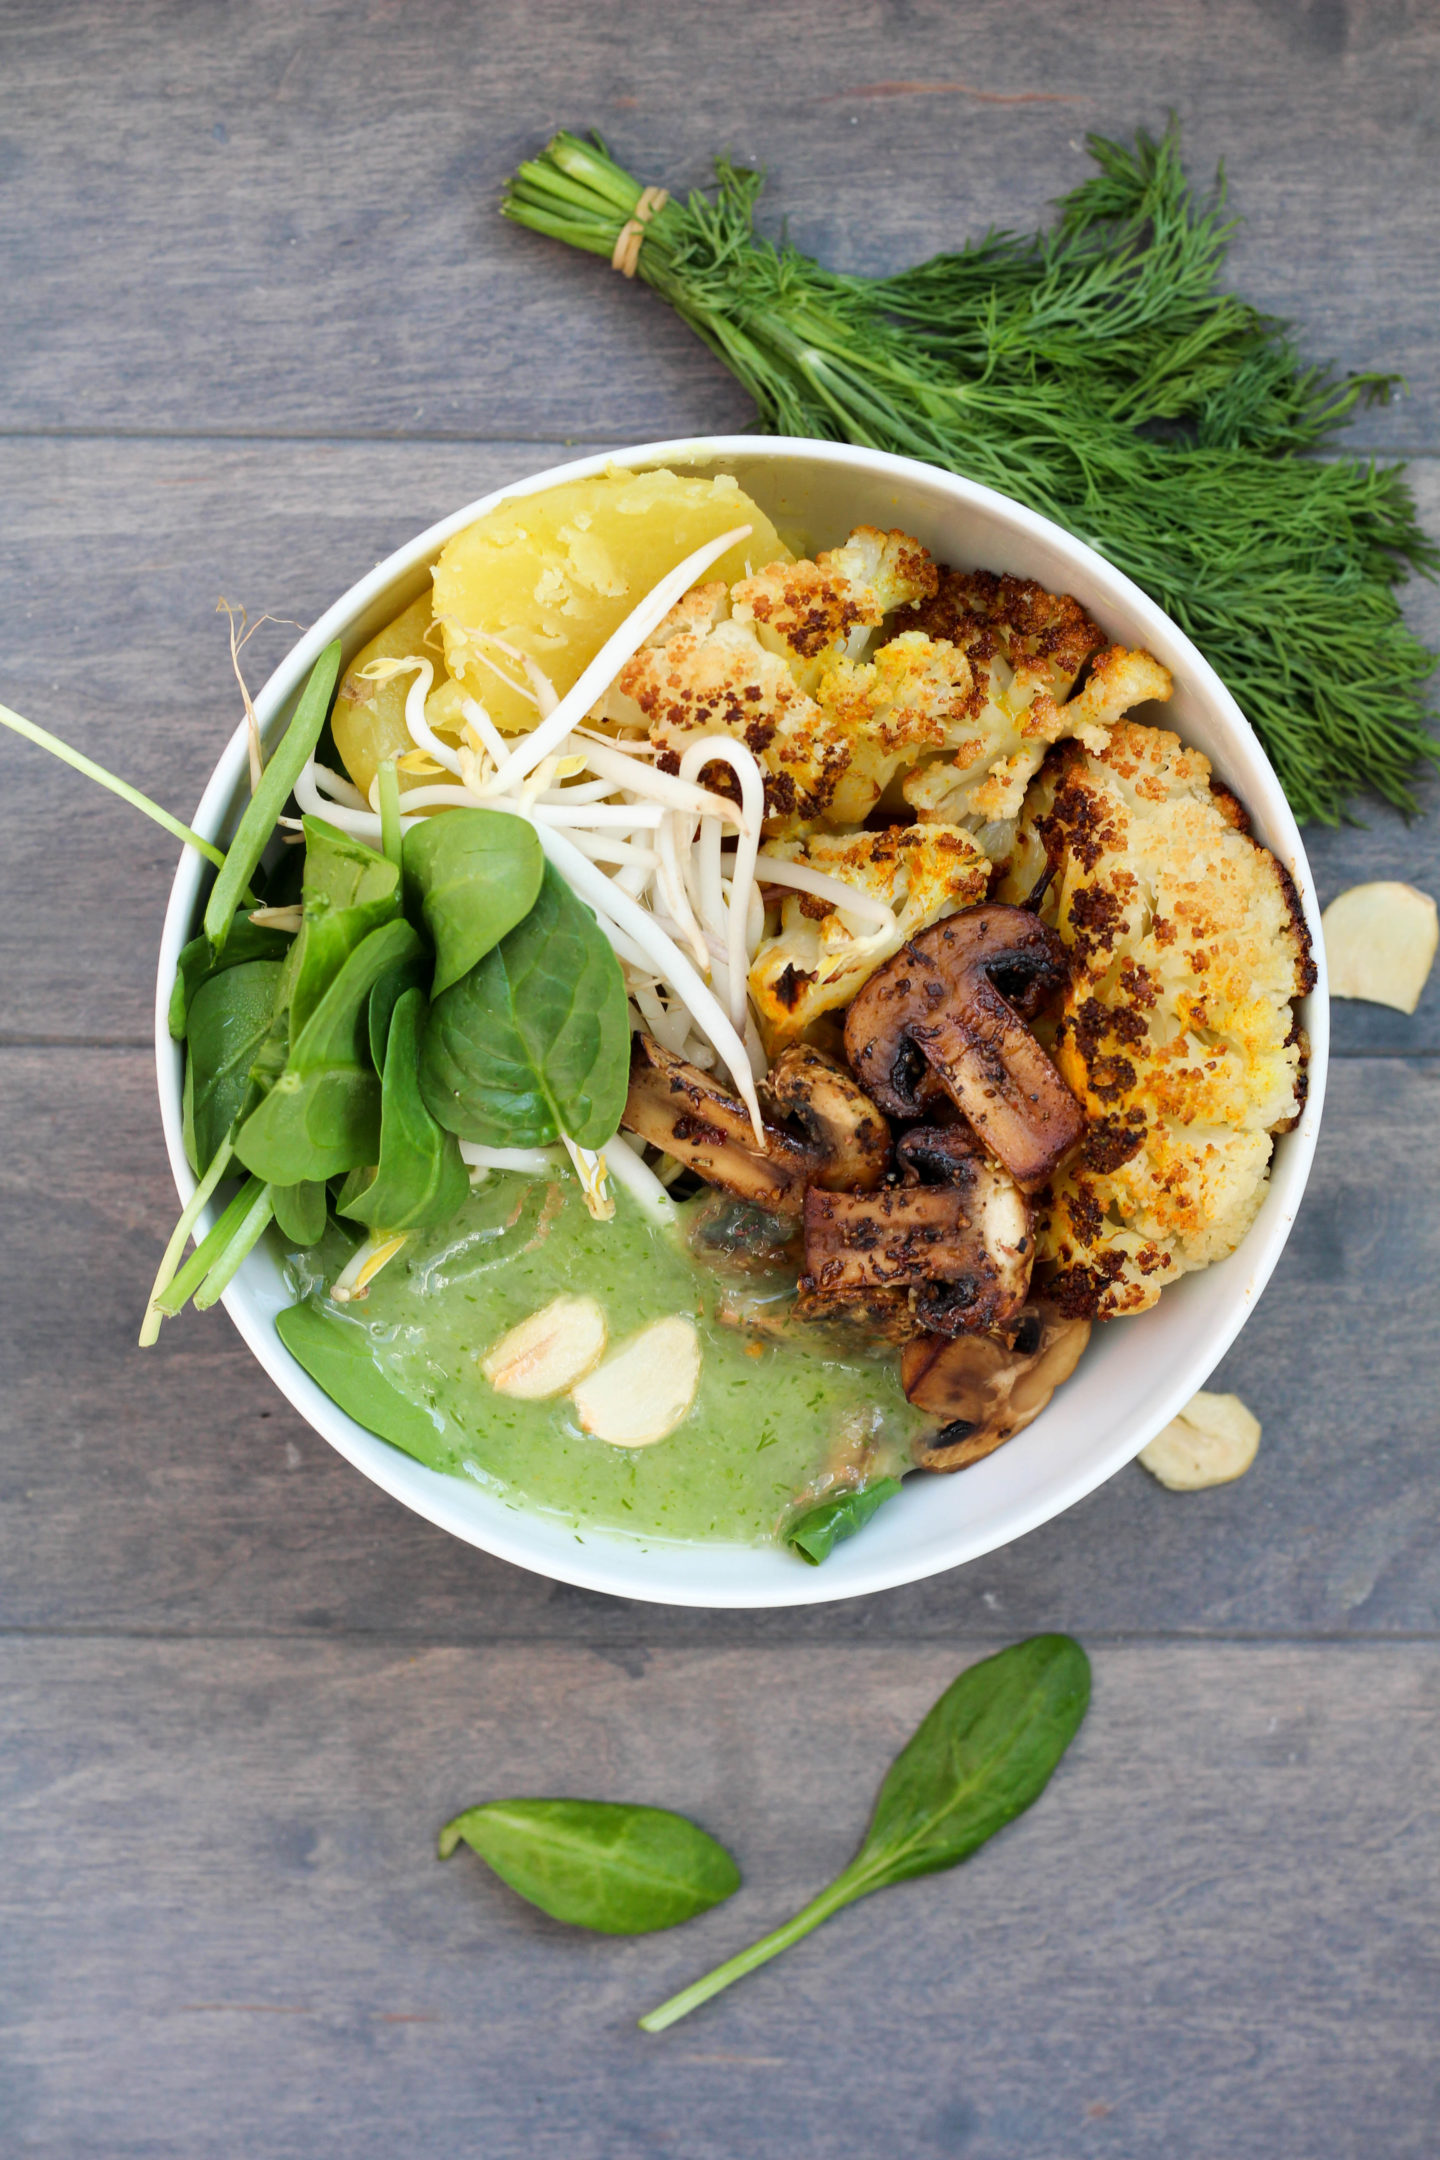 Dein Homespa - Vegan - Plantbased - Healthy - Lifestyle - Bowl- Dill - Erdäpfel